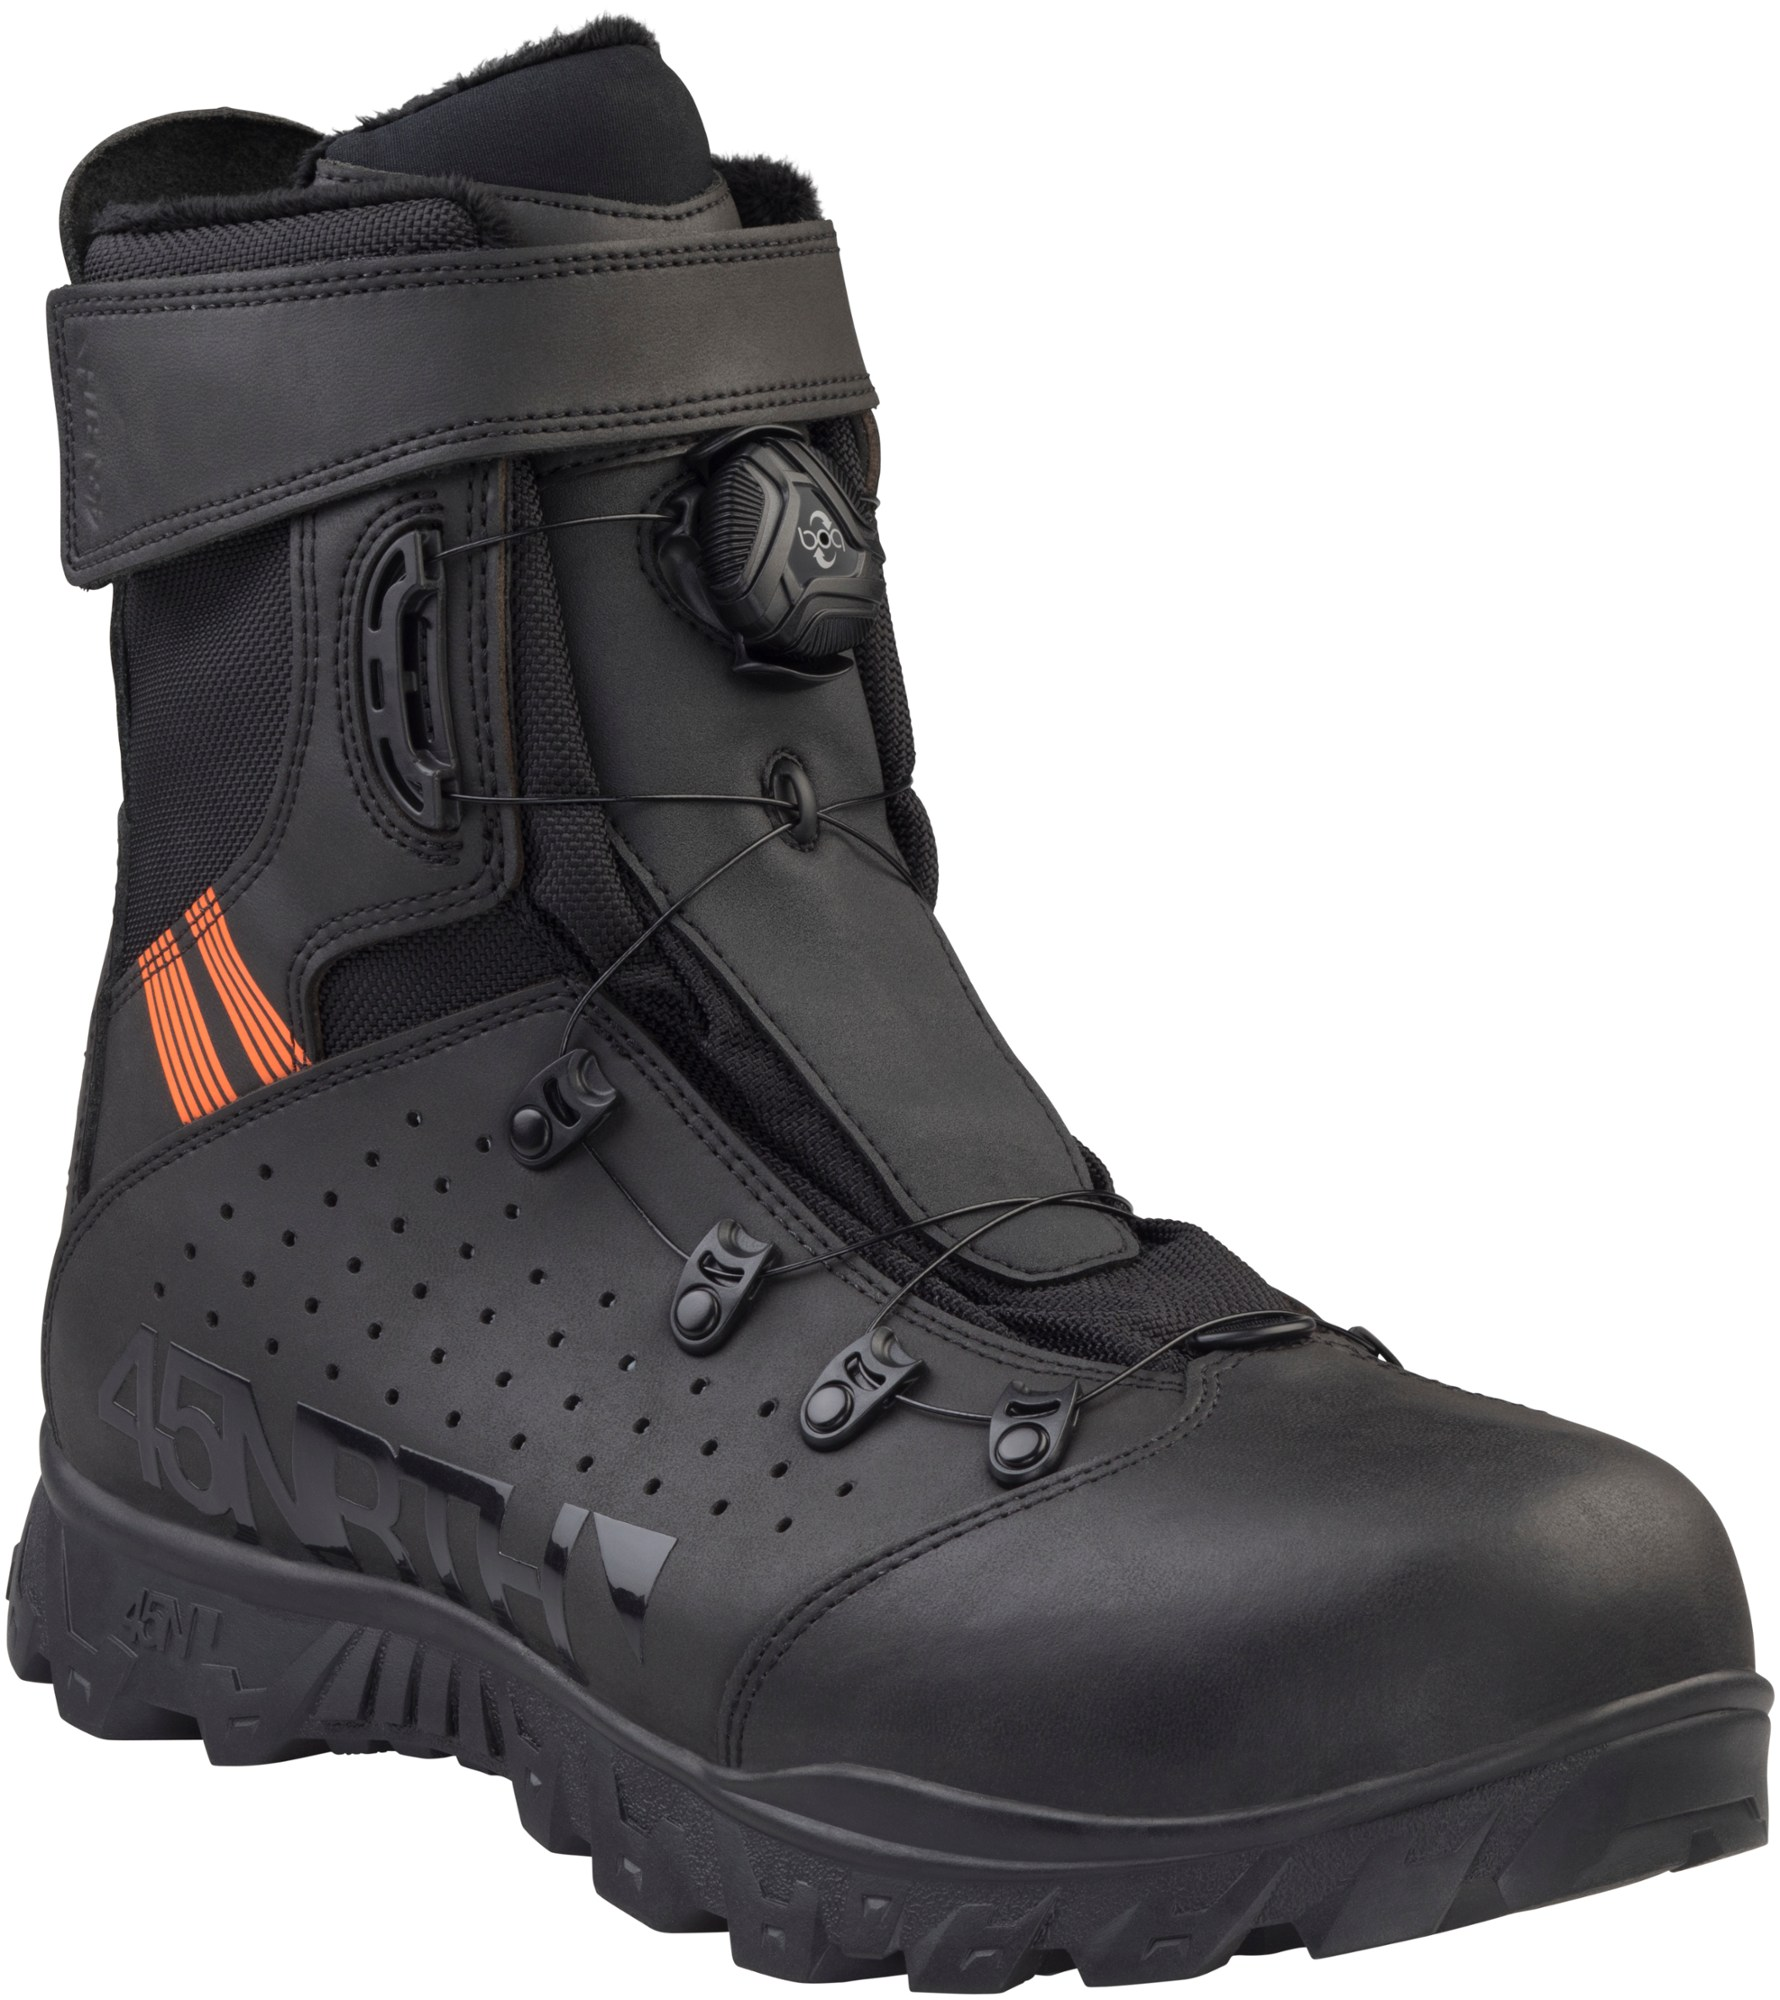 45NRTH Wolvhammer Cycling Boots - Men's